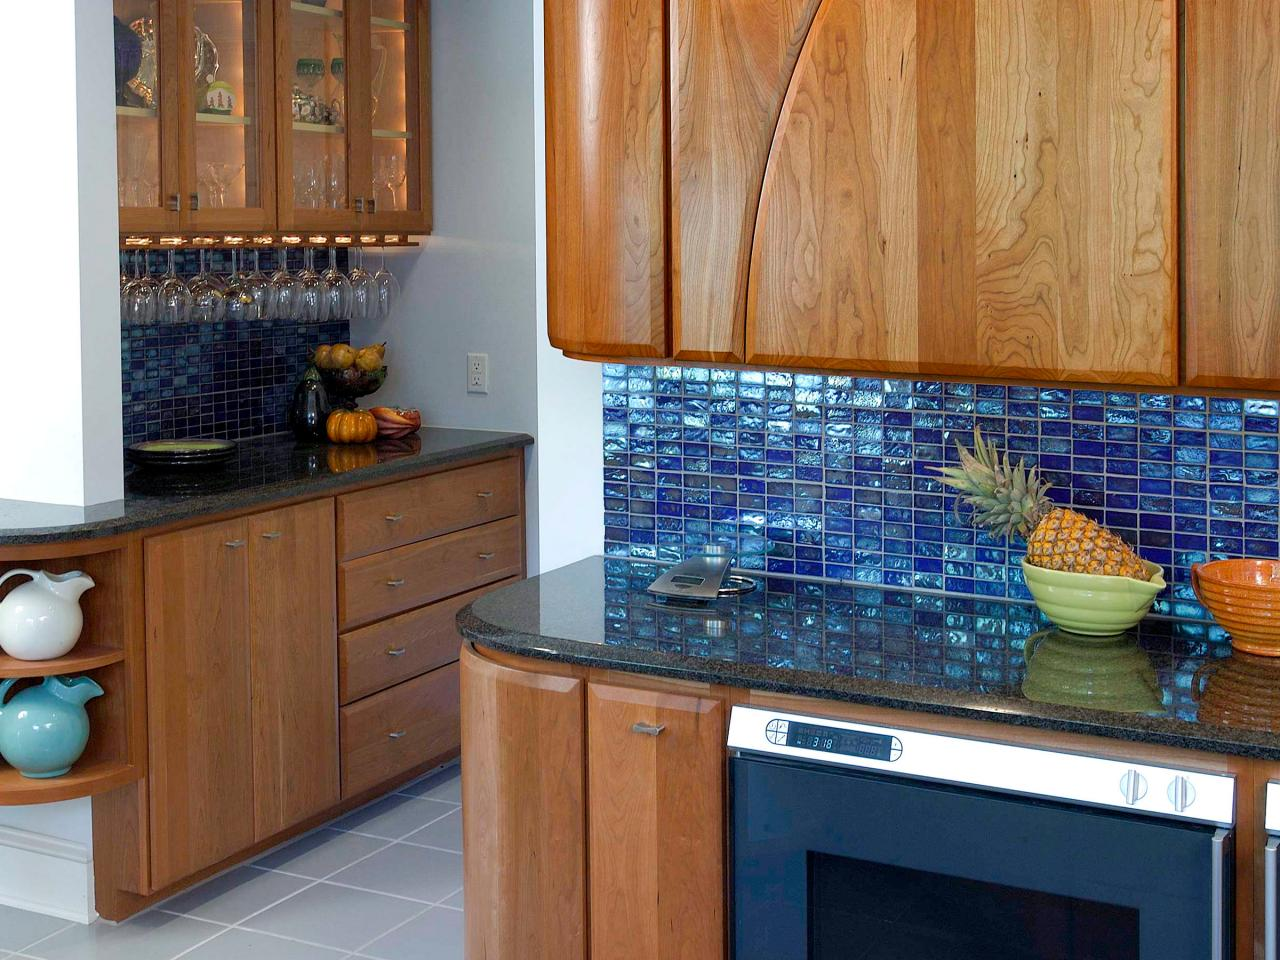 Steep glass tile backsplash an option for larger budgets glass tile backsplashes offer distinct Design kitchen backsplash glass tiles